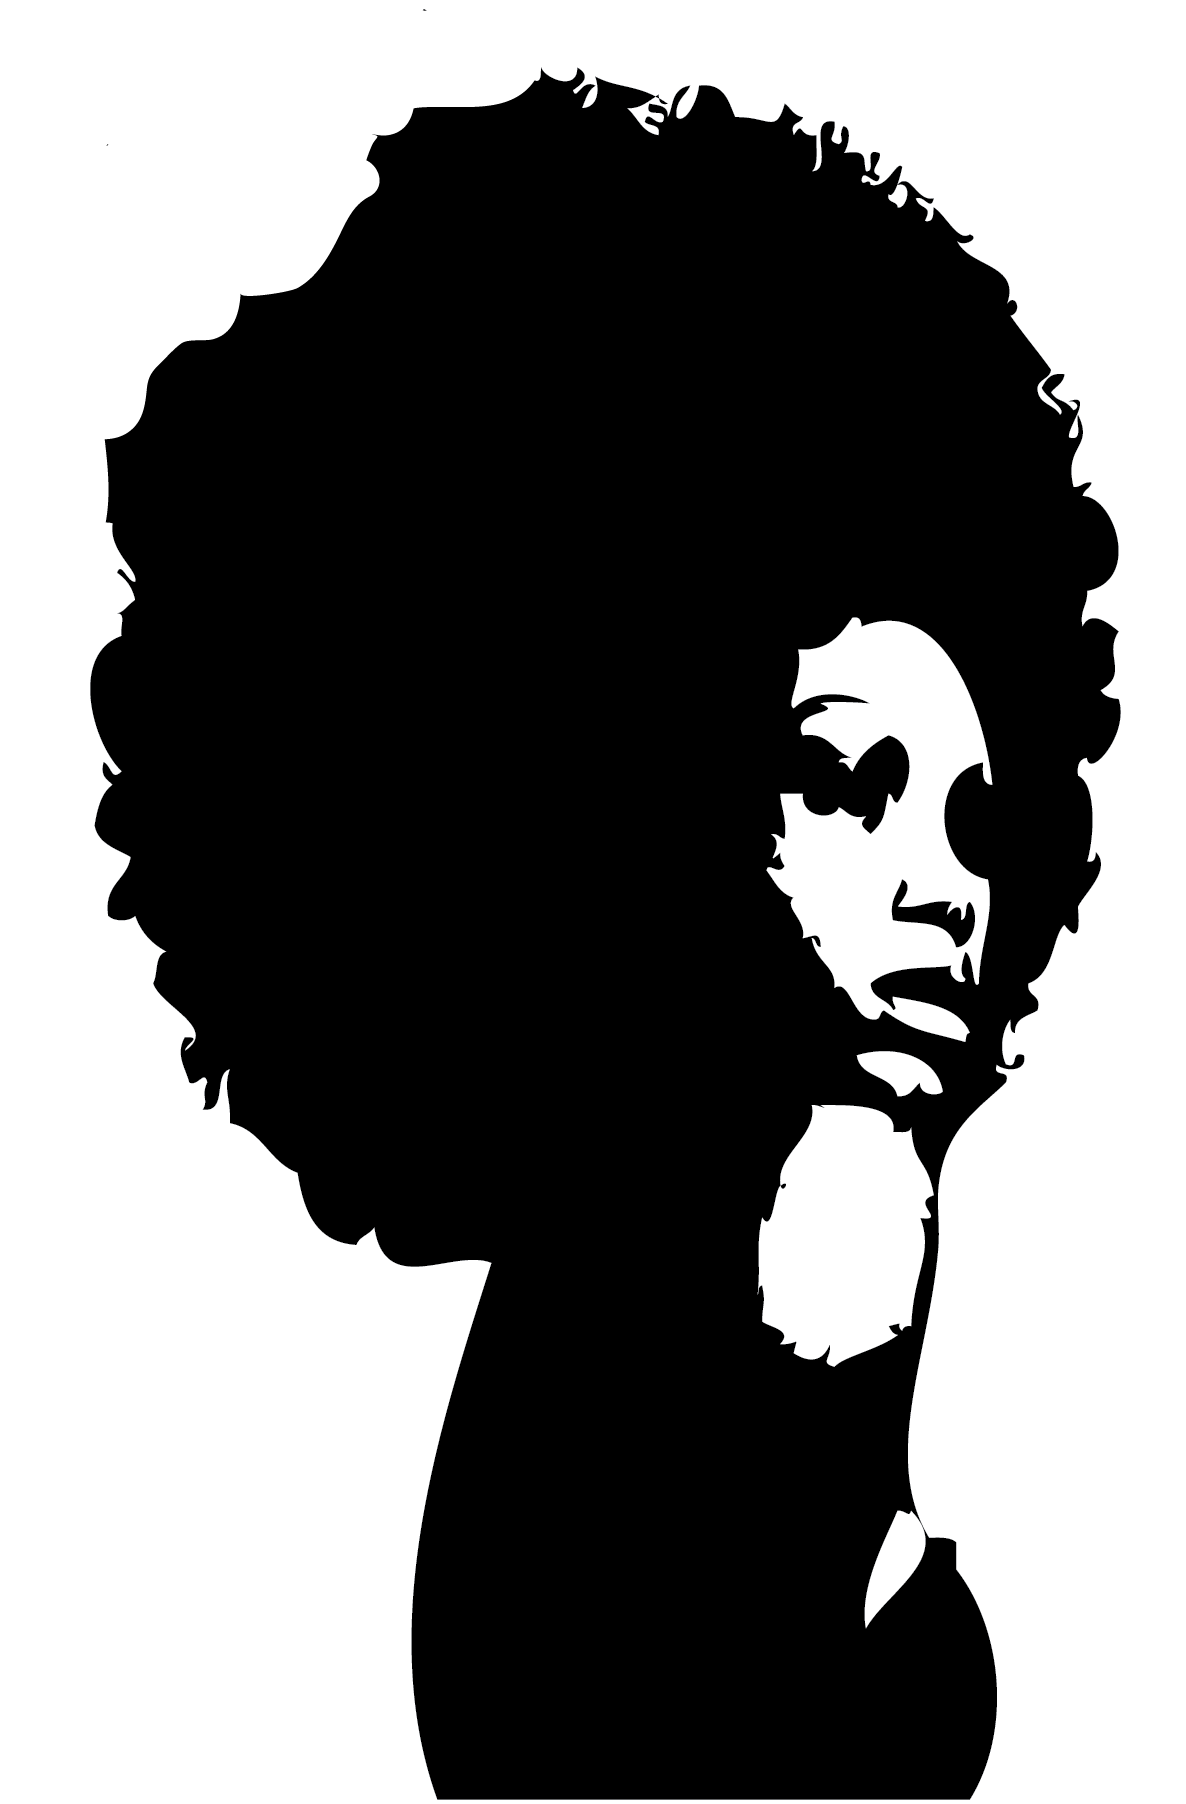 Afro silhouette clipart graphic transparent stock Silhouette Black African American Female Clip art - Afro Lady ... graphic transparent stock